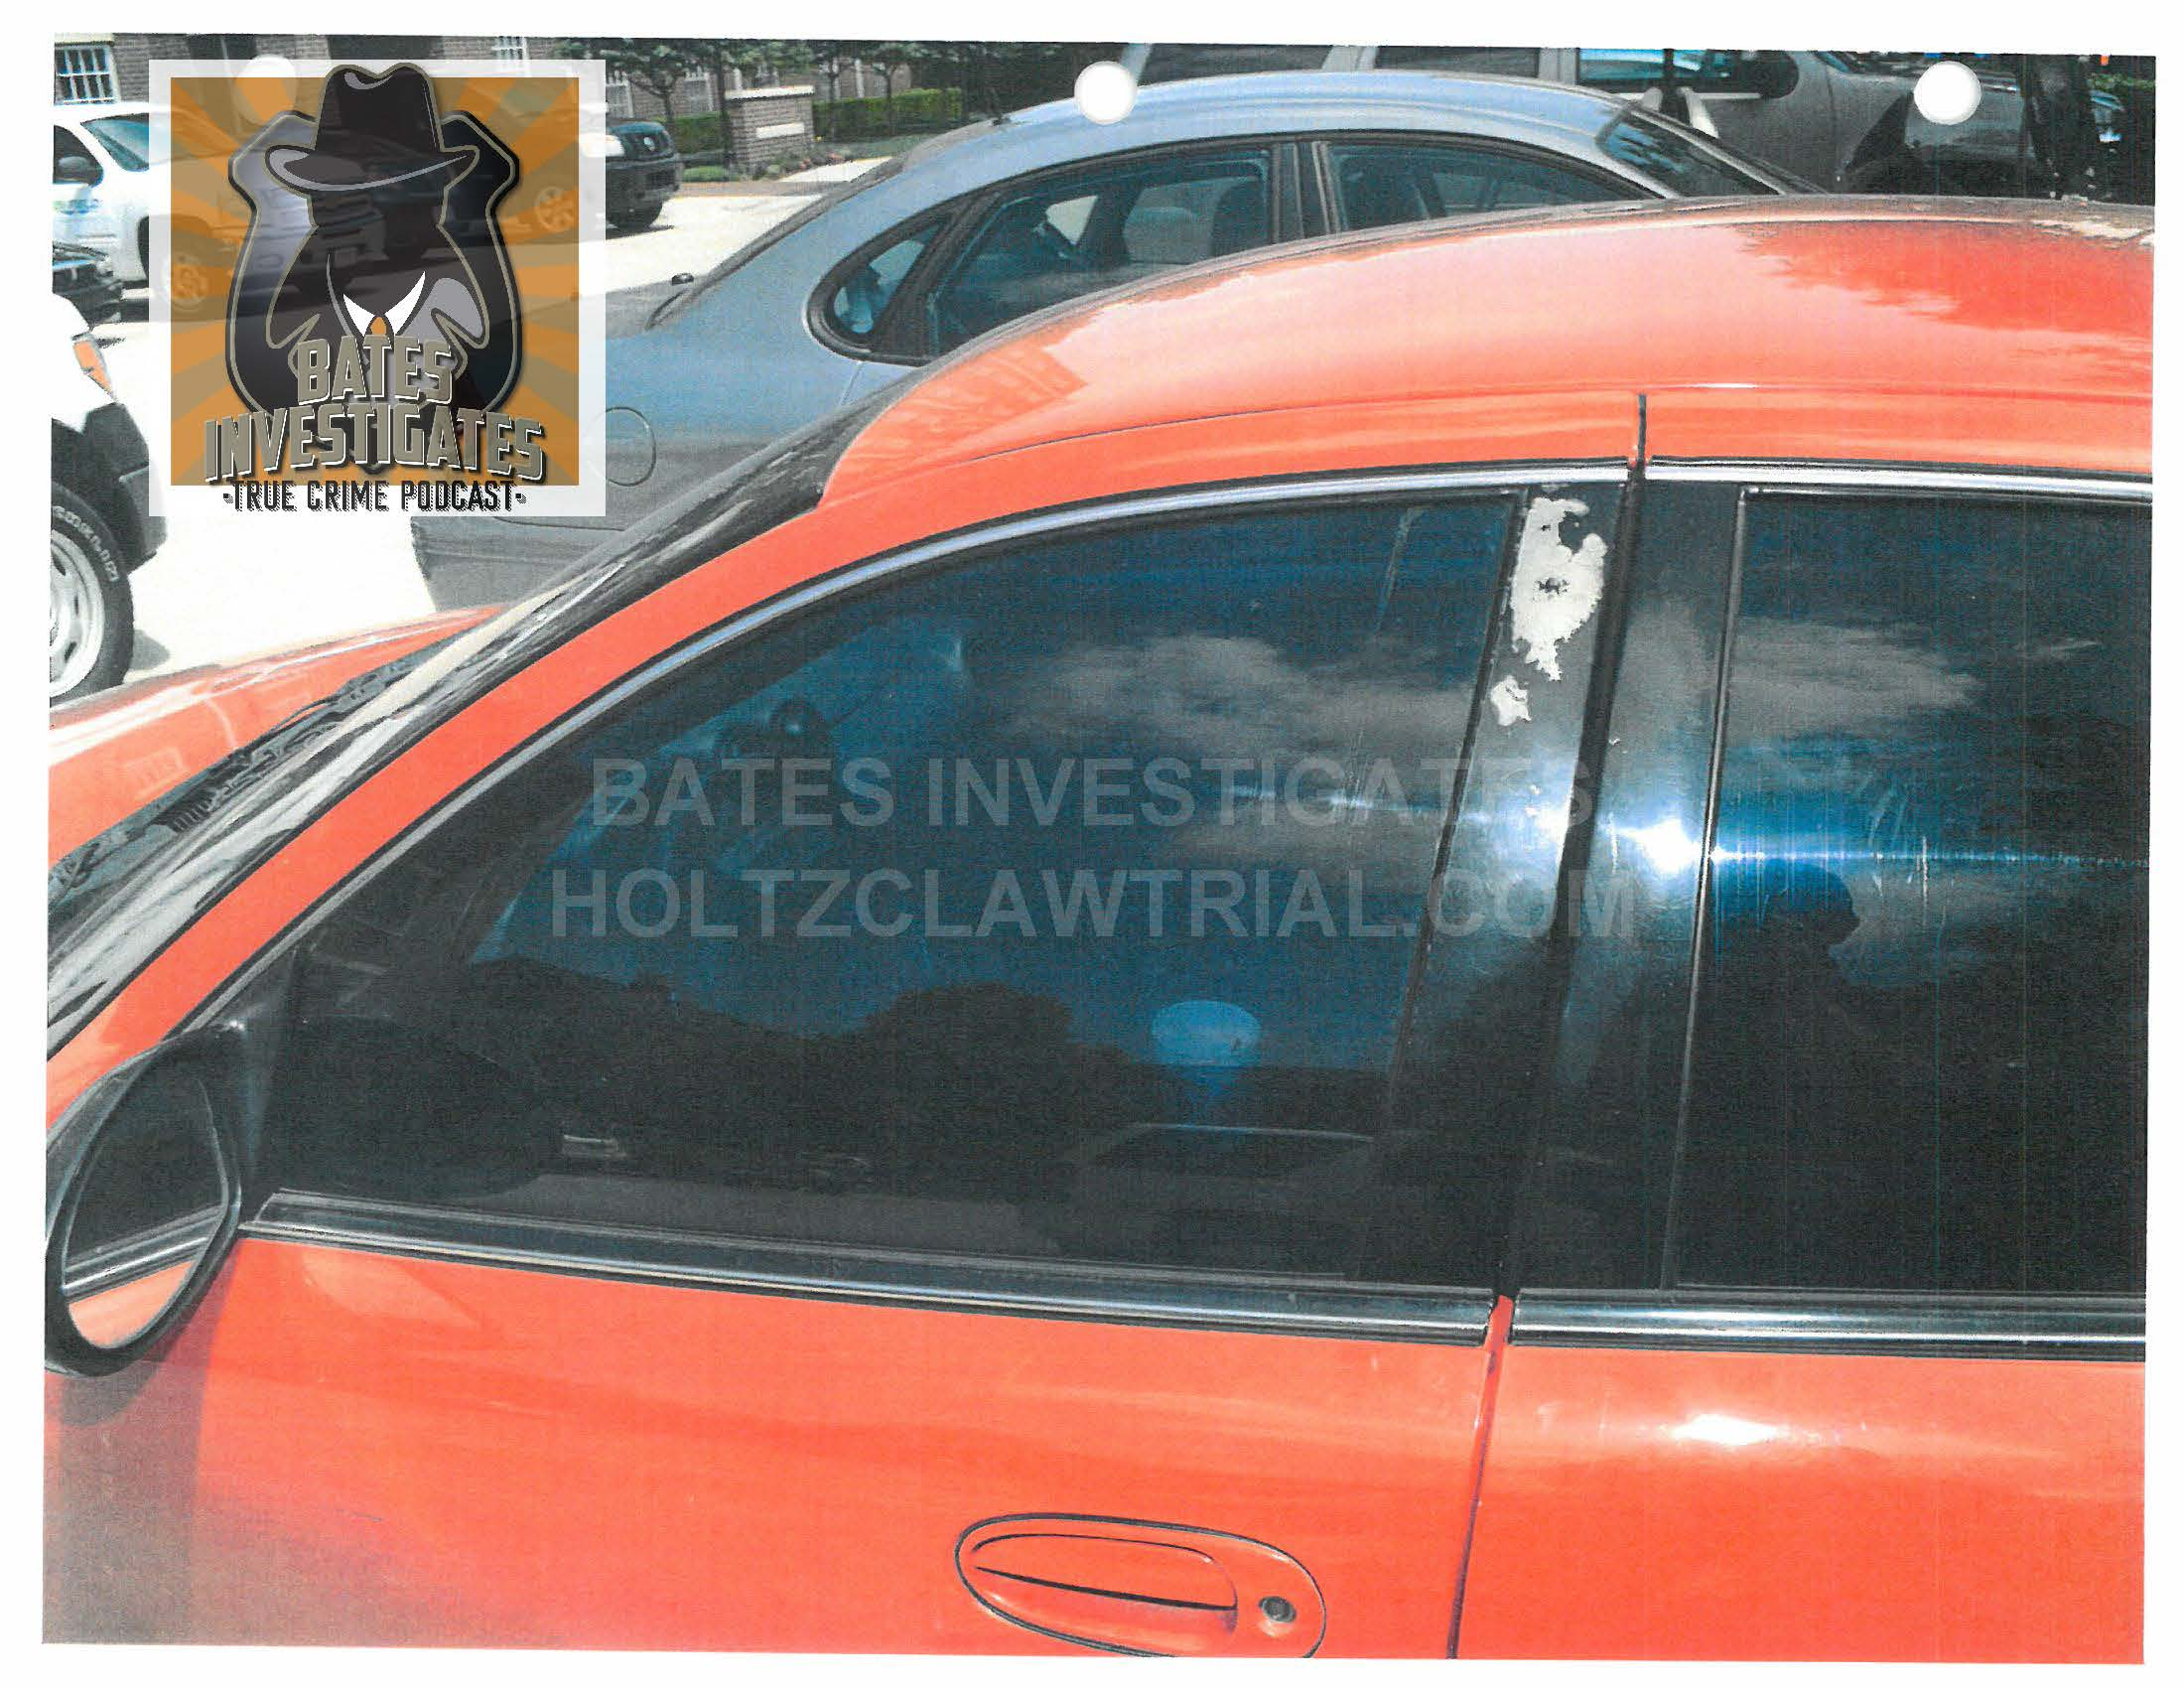 Holtzclaw Podcast Ep02 - Ligons Car - Watermarked_Page_05.jpg